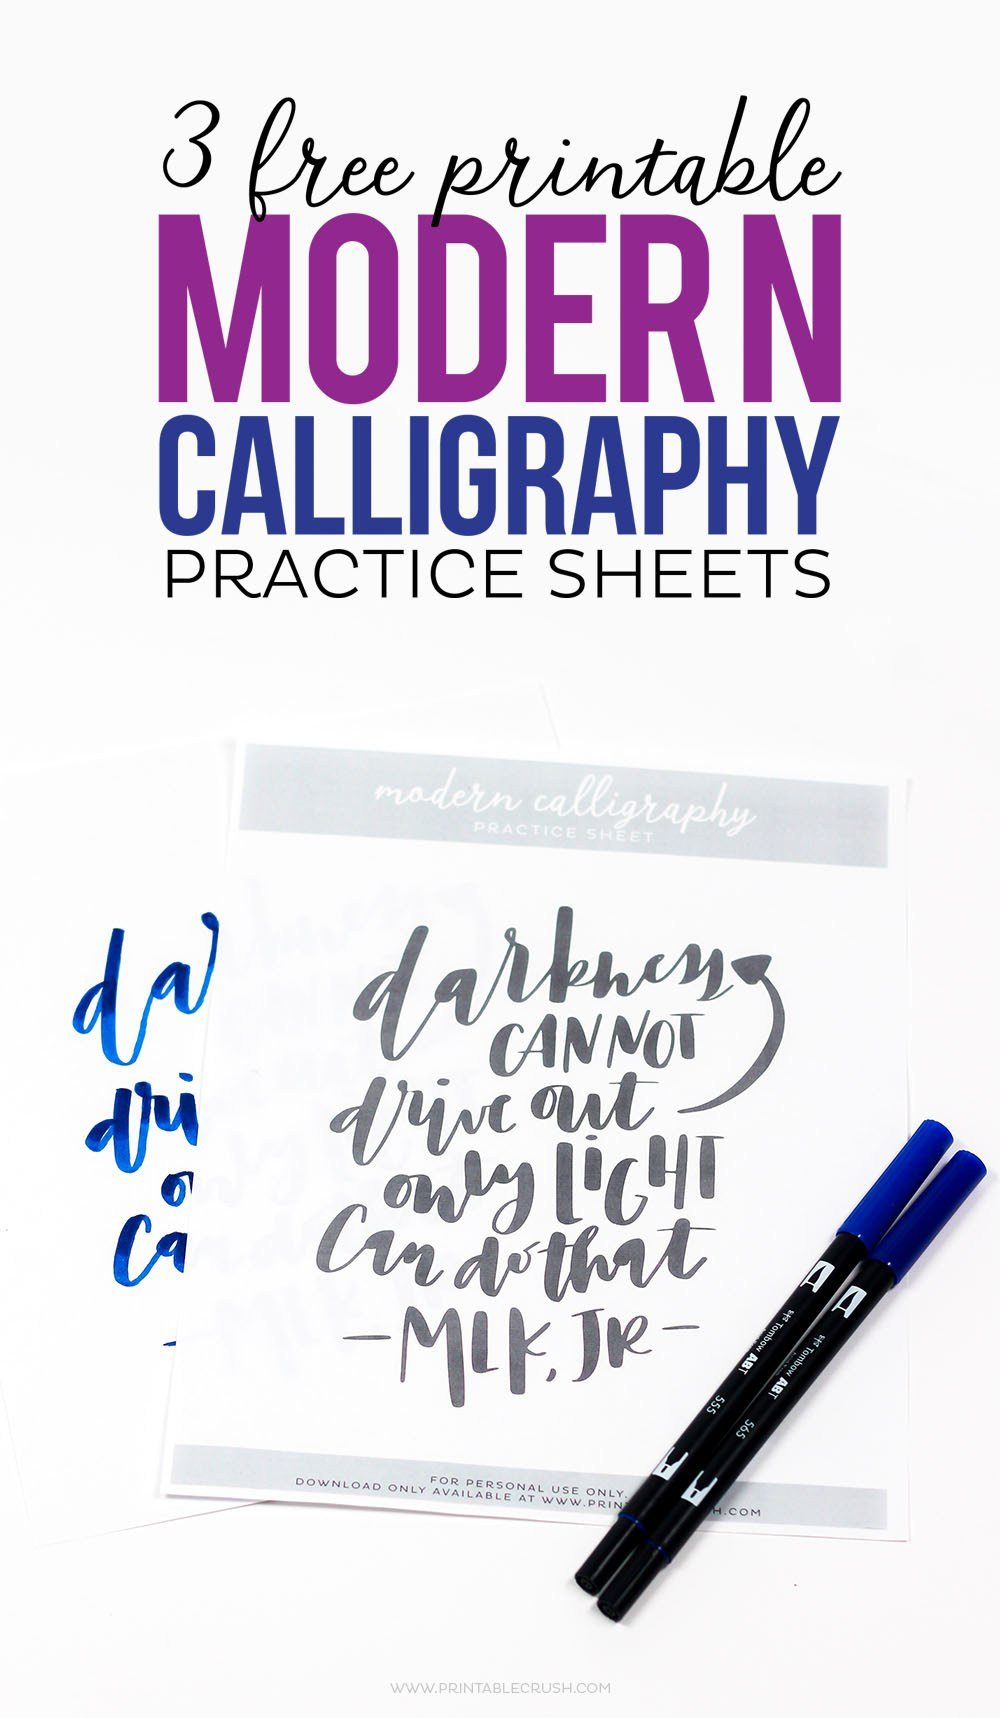 Learn Calligraphy Worksheets 3 Free Printable Modern Calligraphy Practice Sheets